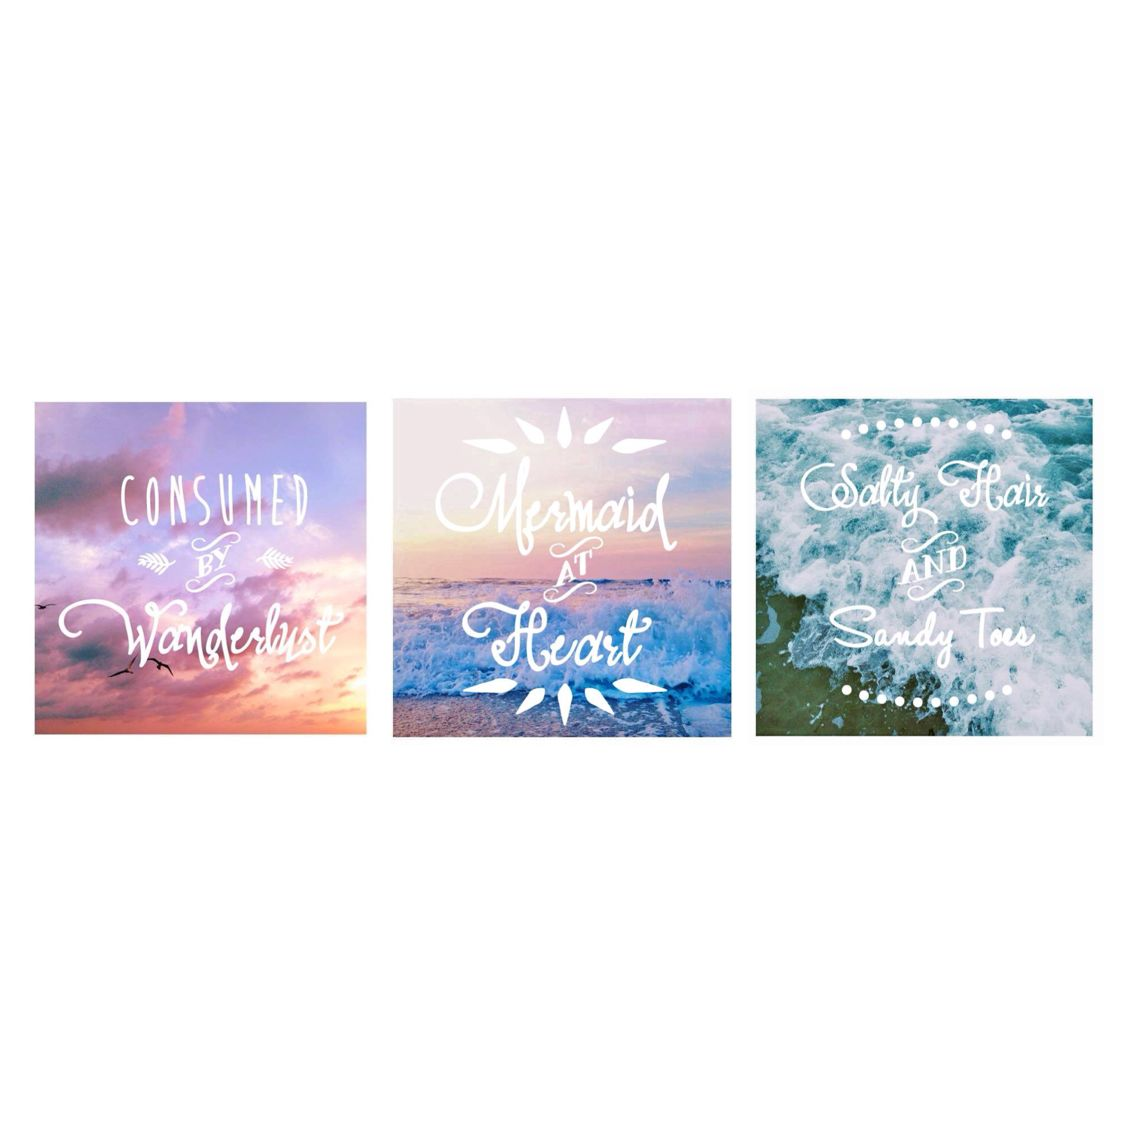 Fun beachy prints all available on the shop! TheSunKissedOne.Etsy.com #TheSunKissedOne #boho #bohemian #sunset #sunrise #wanderlust #mermaid